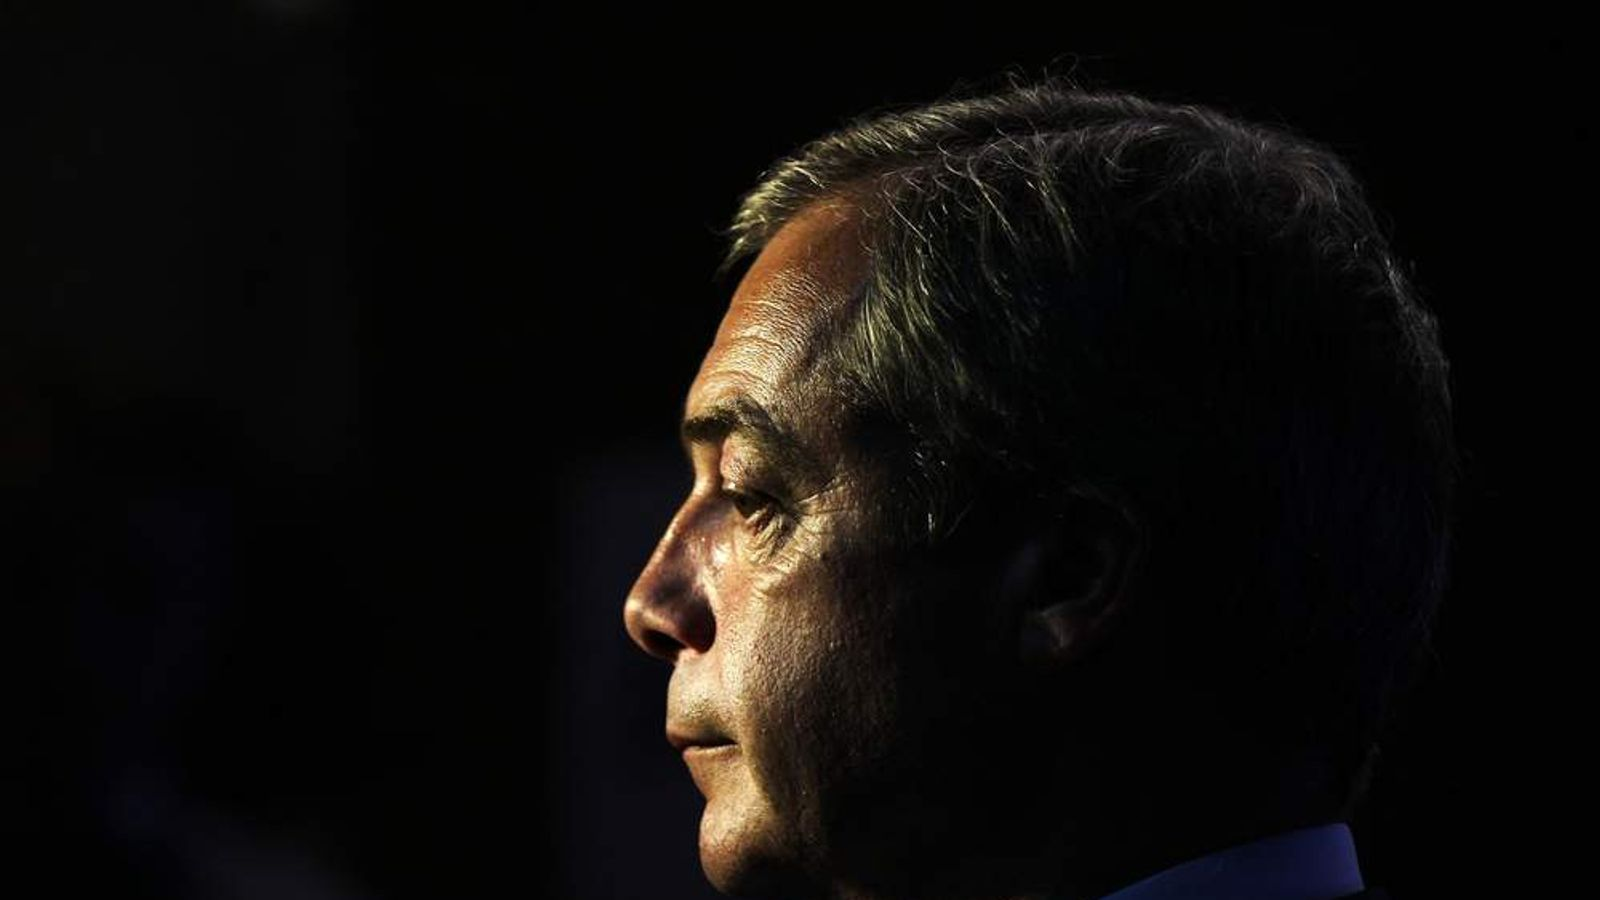 UKIP leader Nigel Farage at the Newark by-election count.